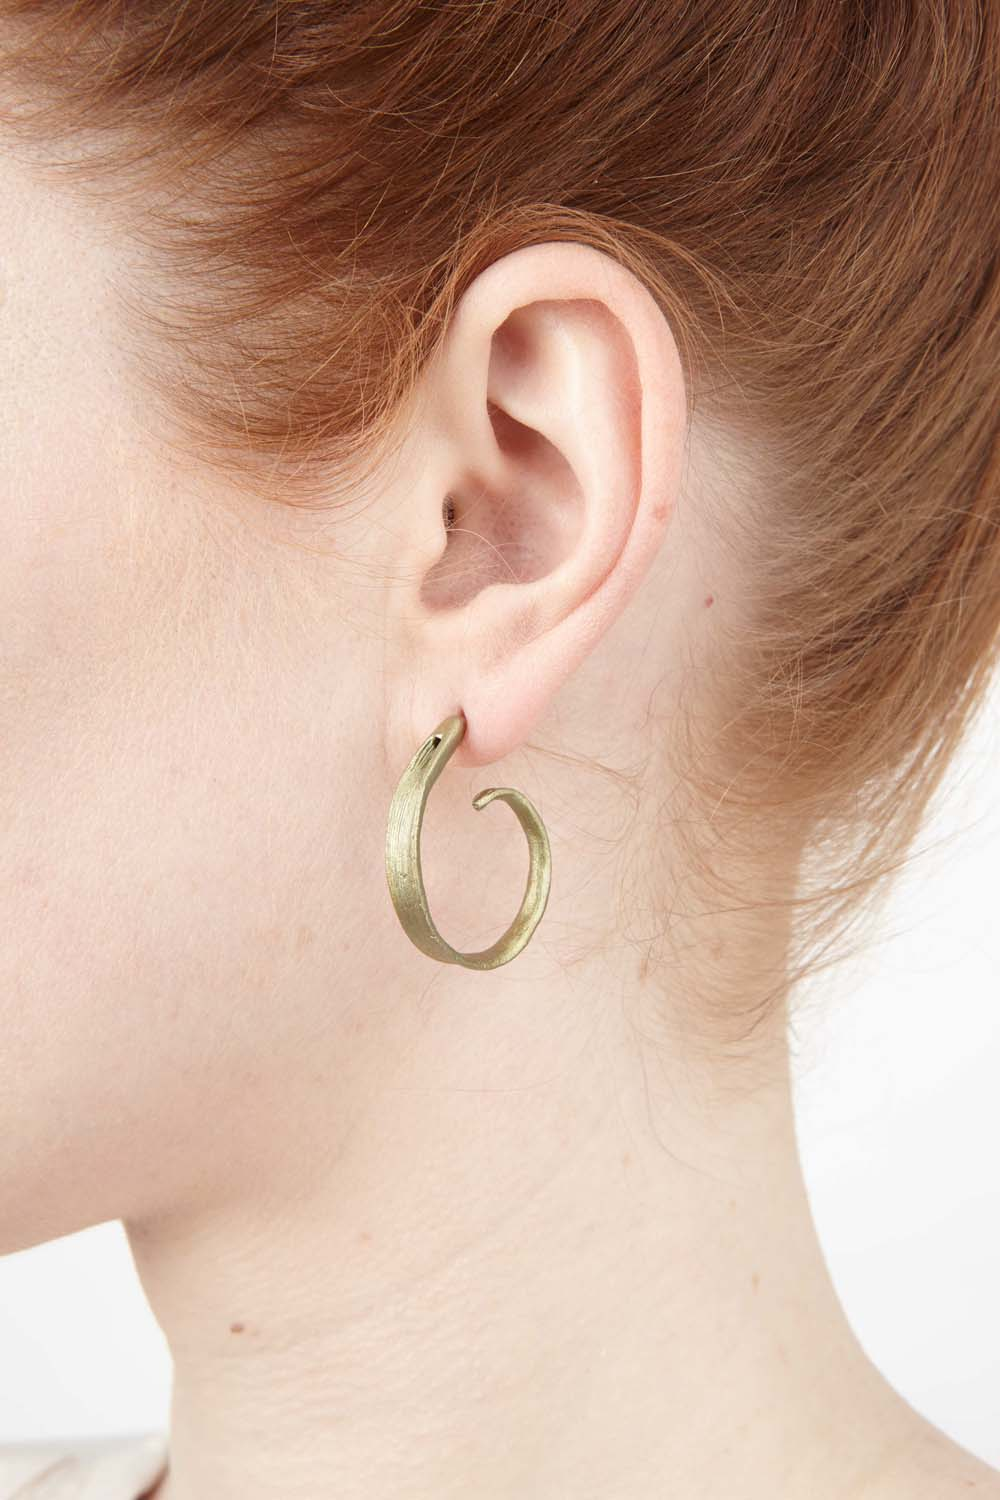 Rice Earrings - Leaf Hoop Post